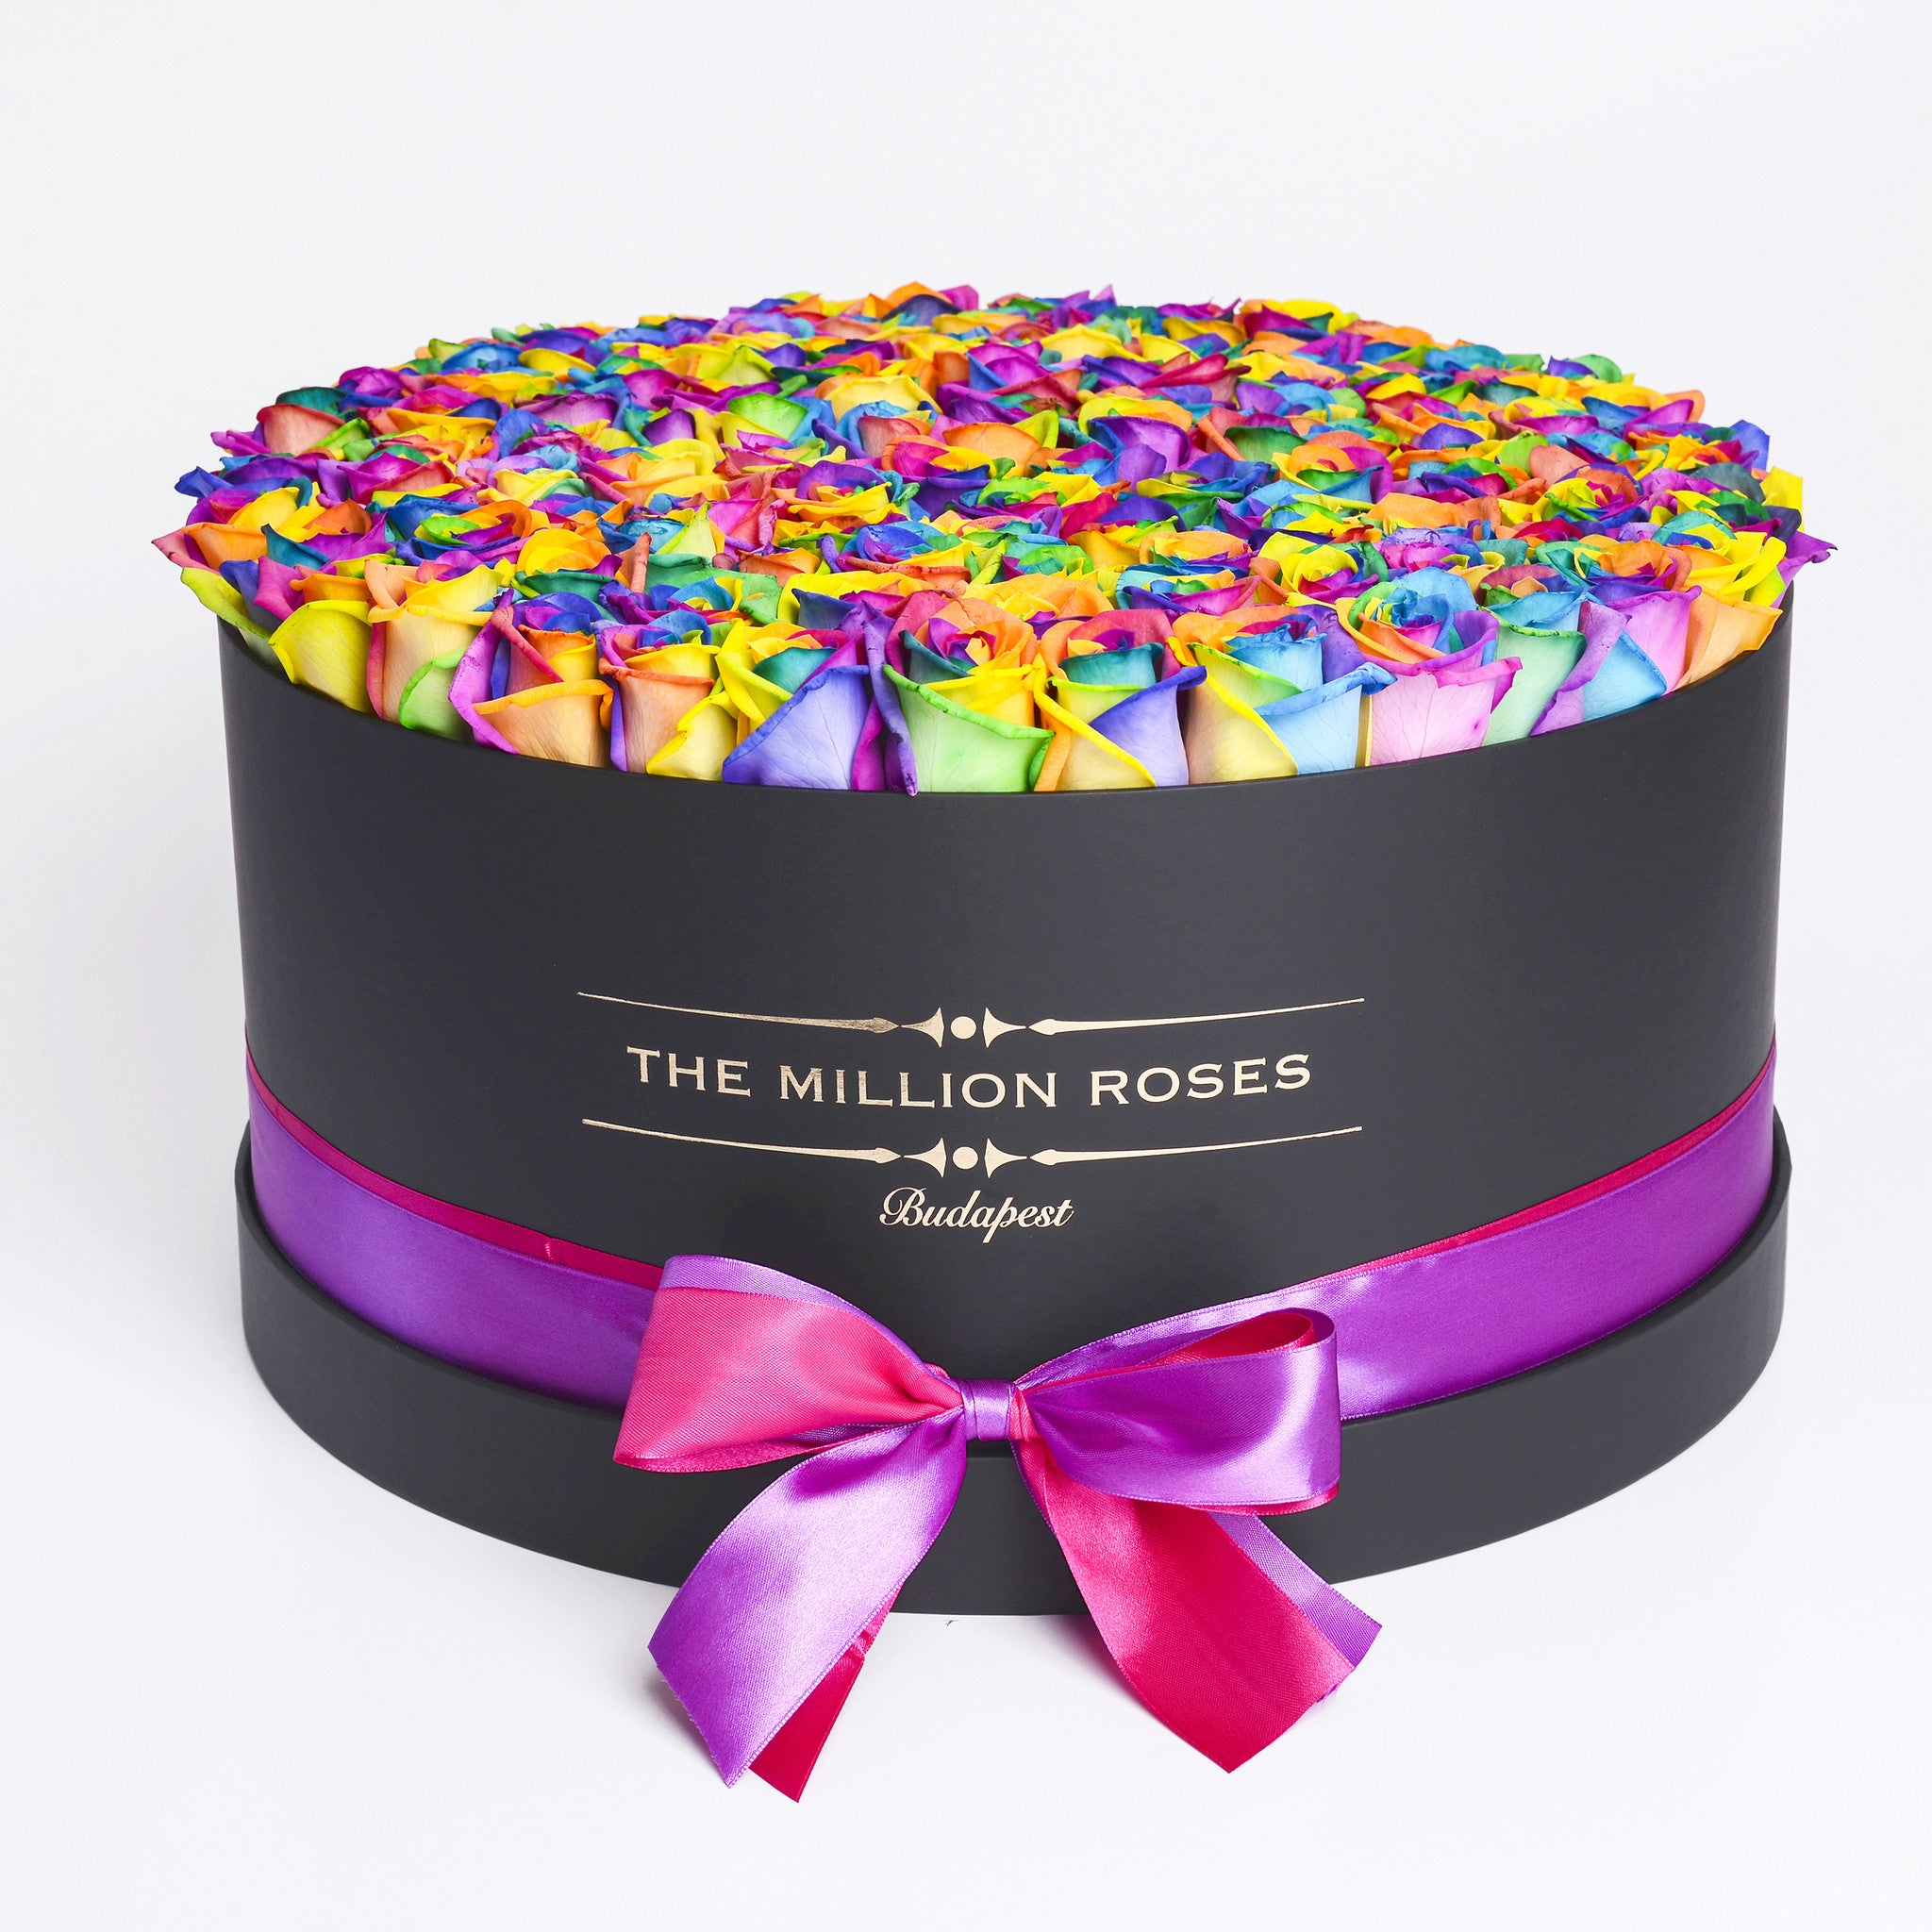 The Million - Rainbow Roses - Black box - The Million Roses Budapest